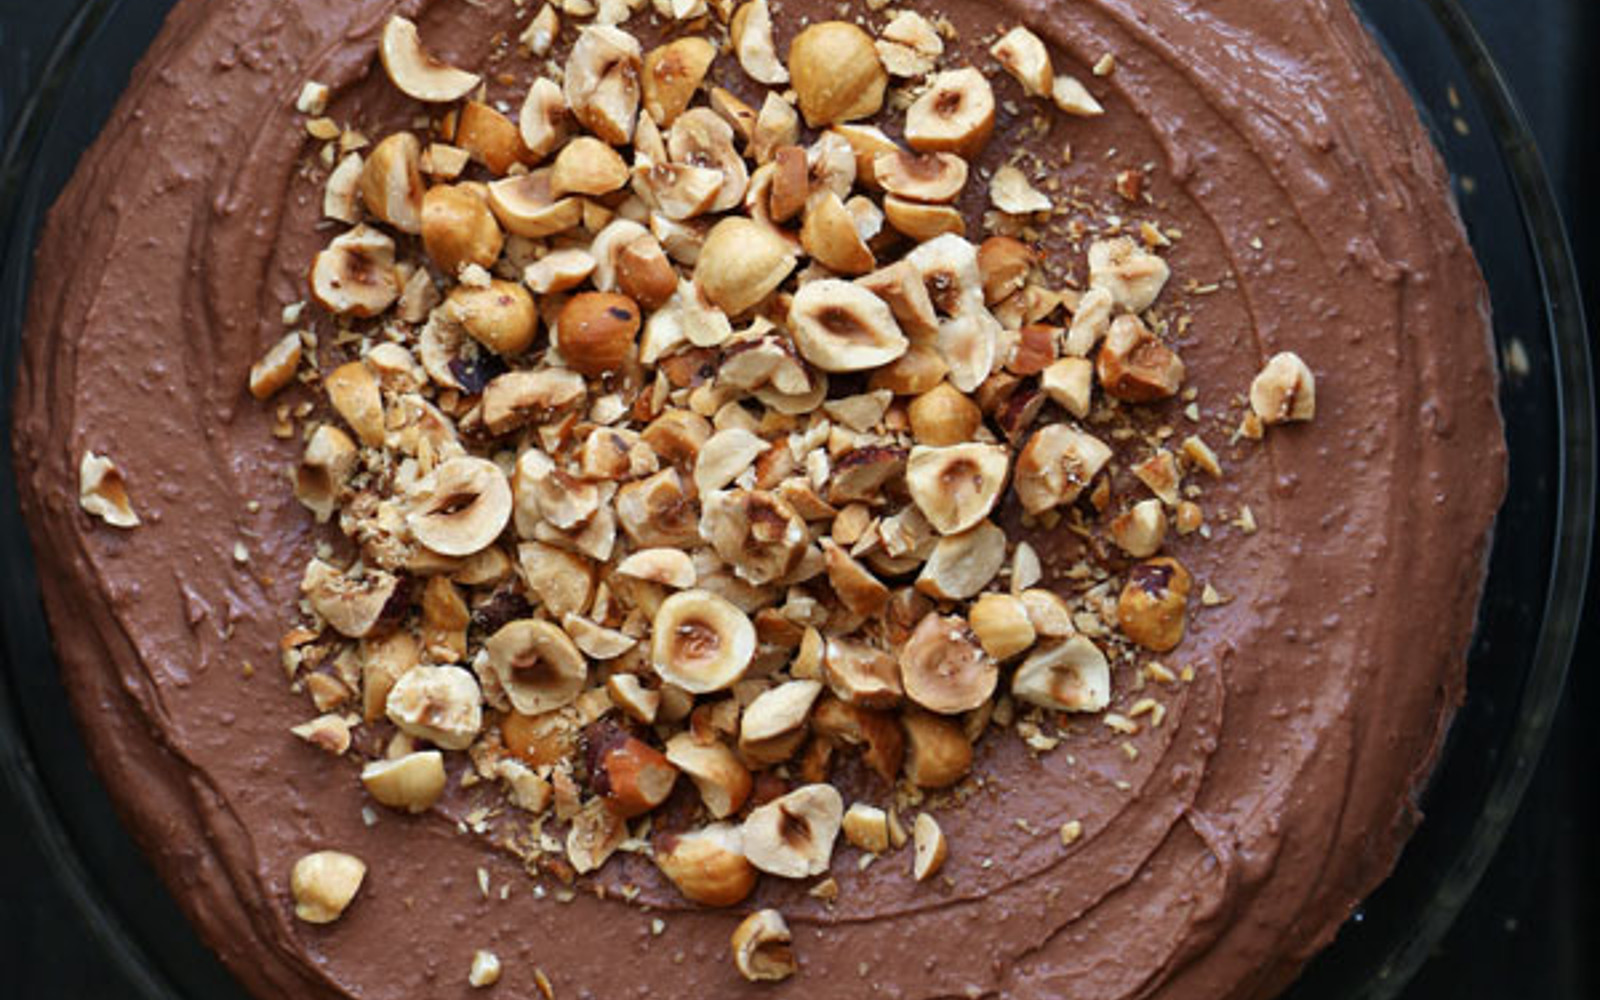 Chocolate Teff Cake With Chocolate Hazelnut Frosting